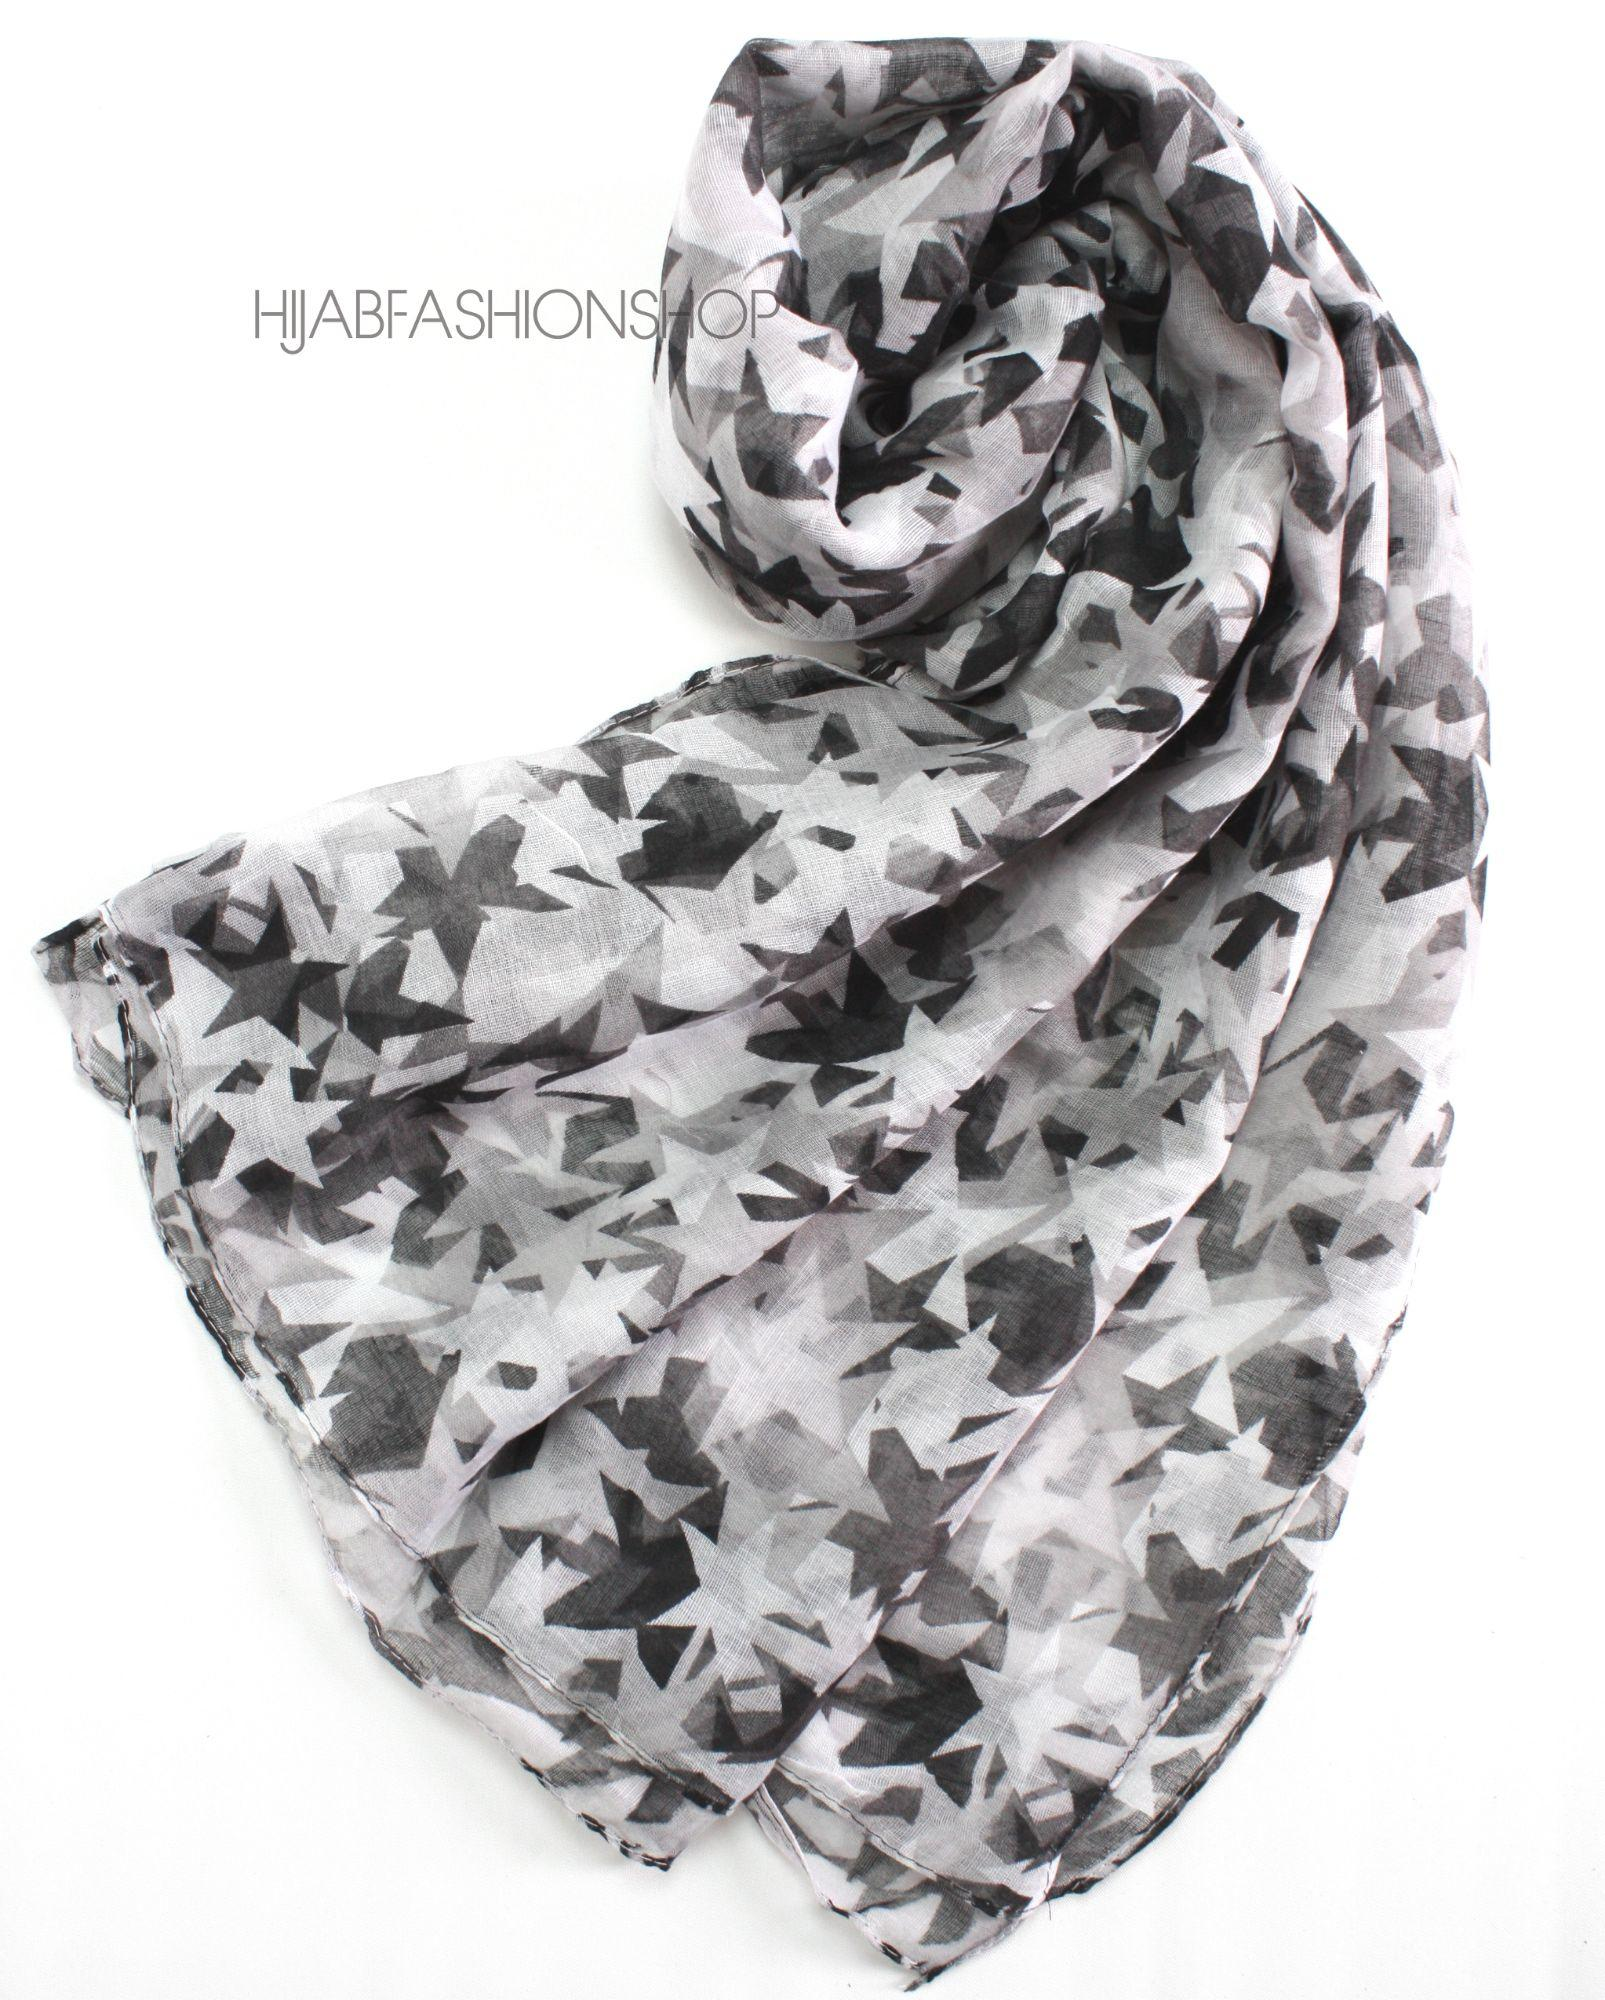 black, grey and white star print hijab